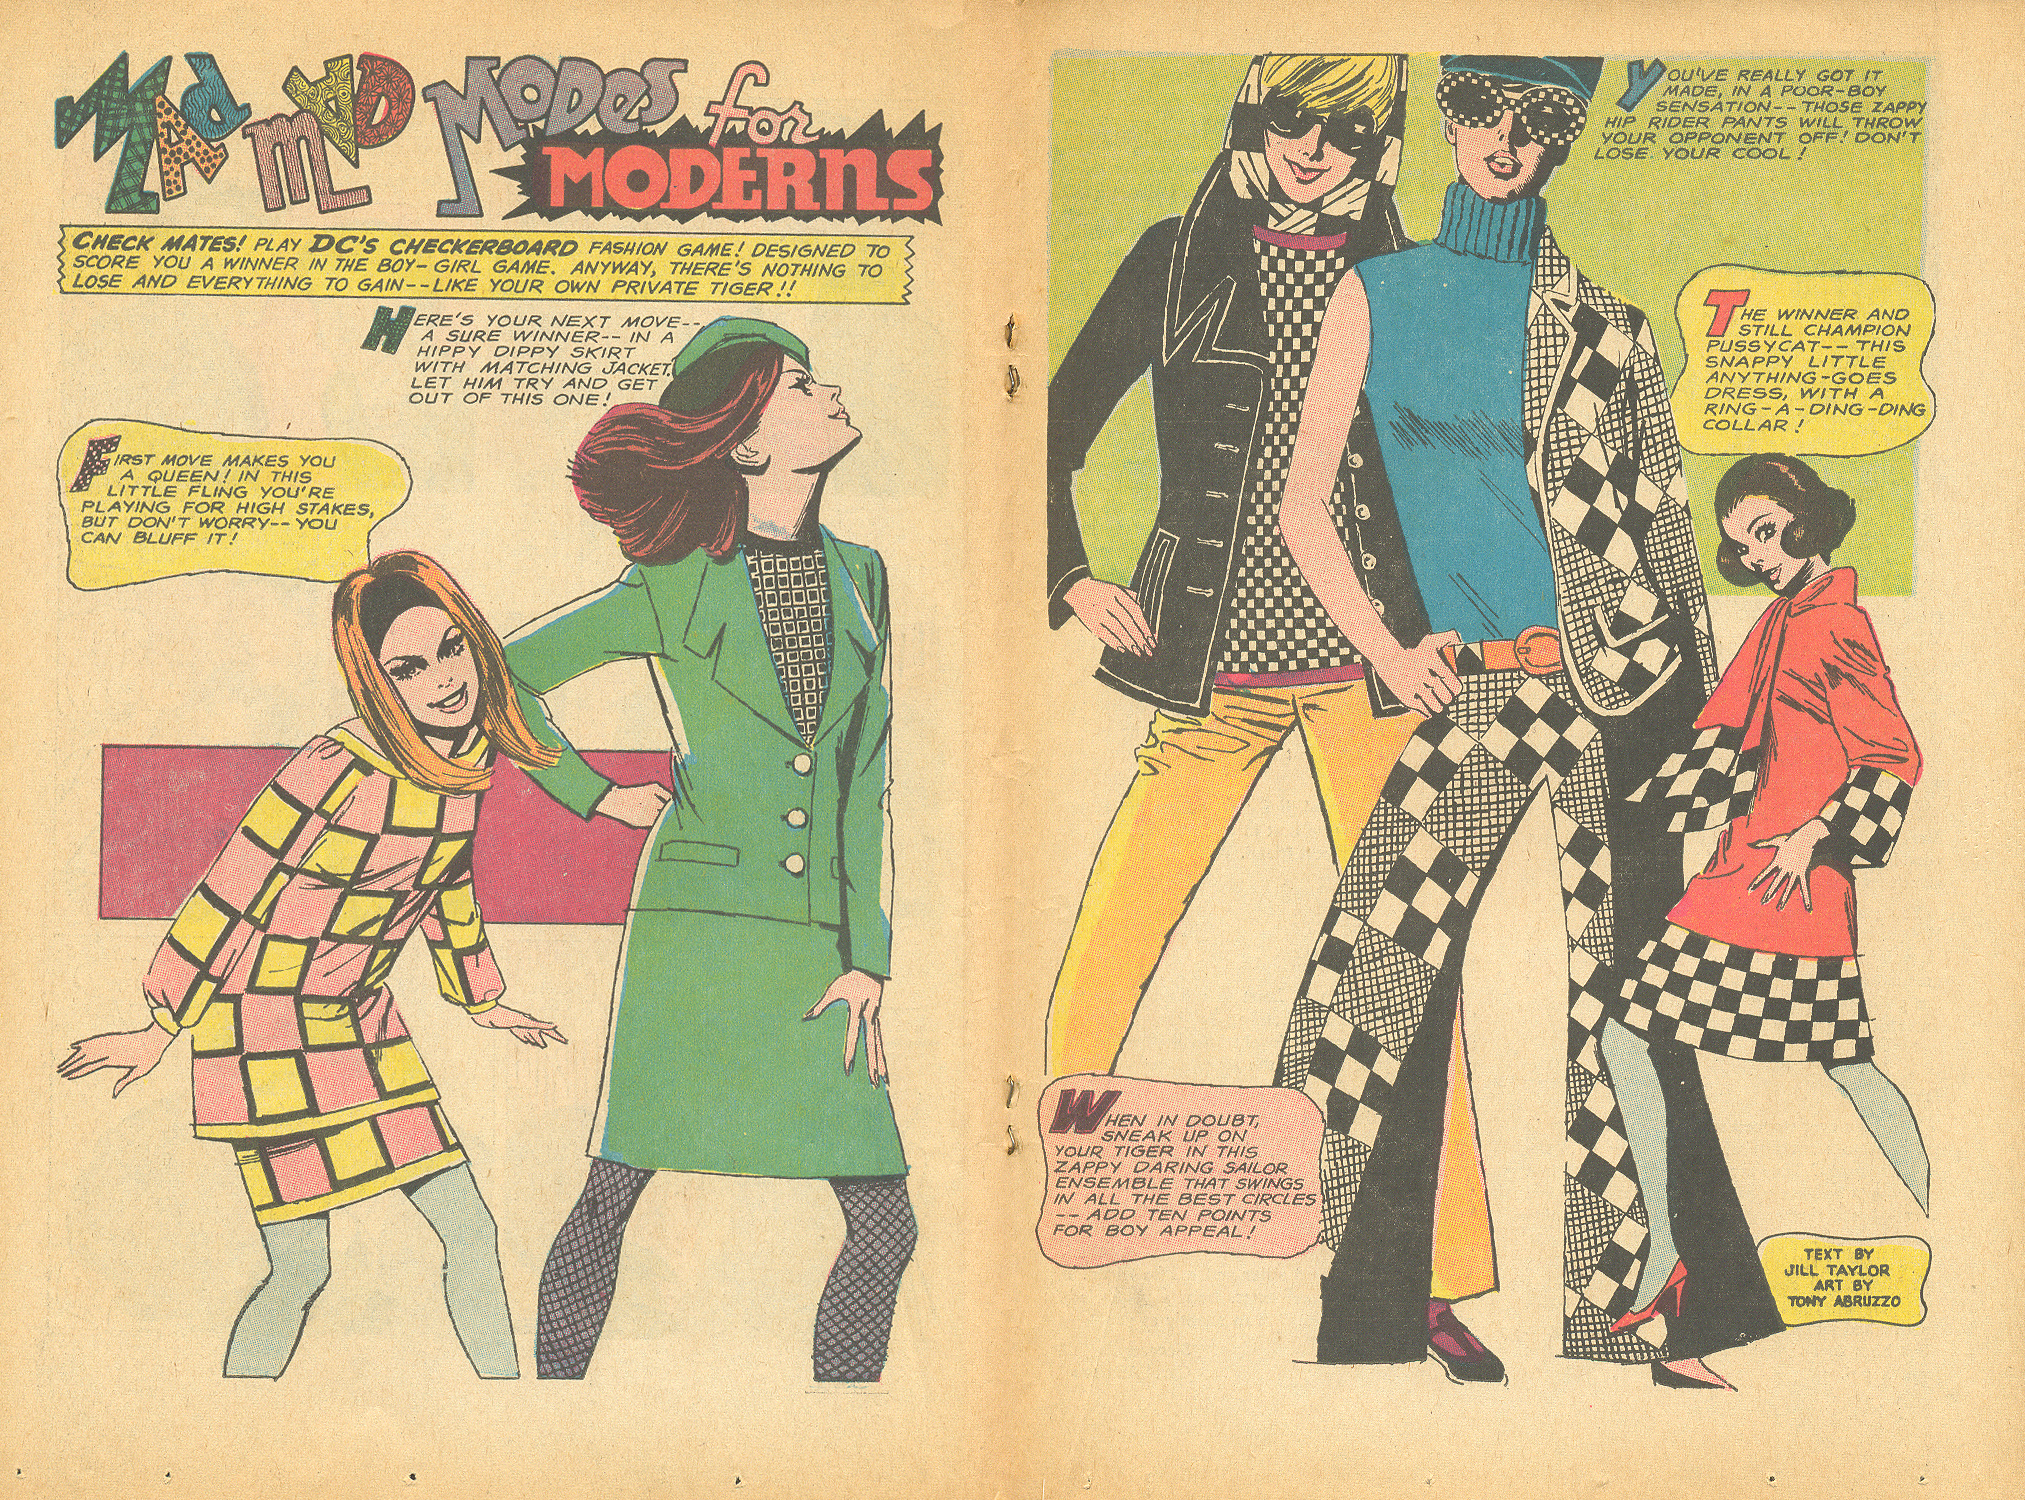 """""""Mad Mad Modes for Moderns""""  Falling in Love  #88 (January 1967)"""